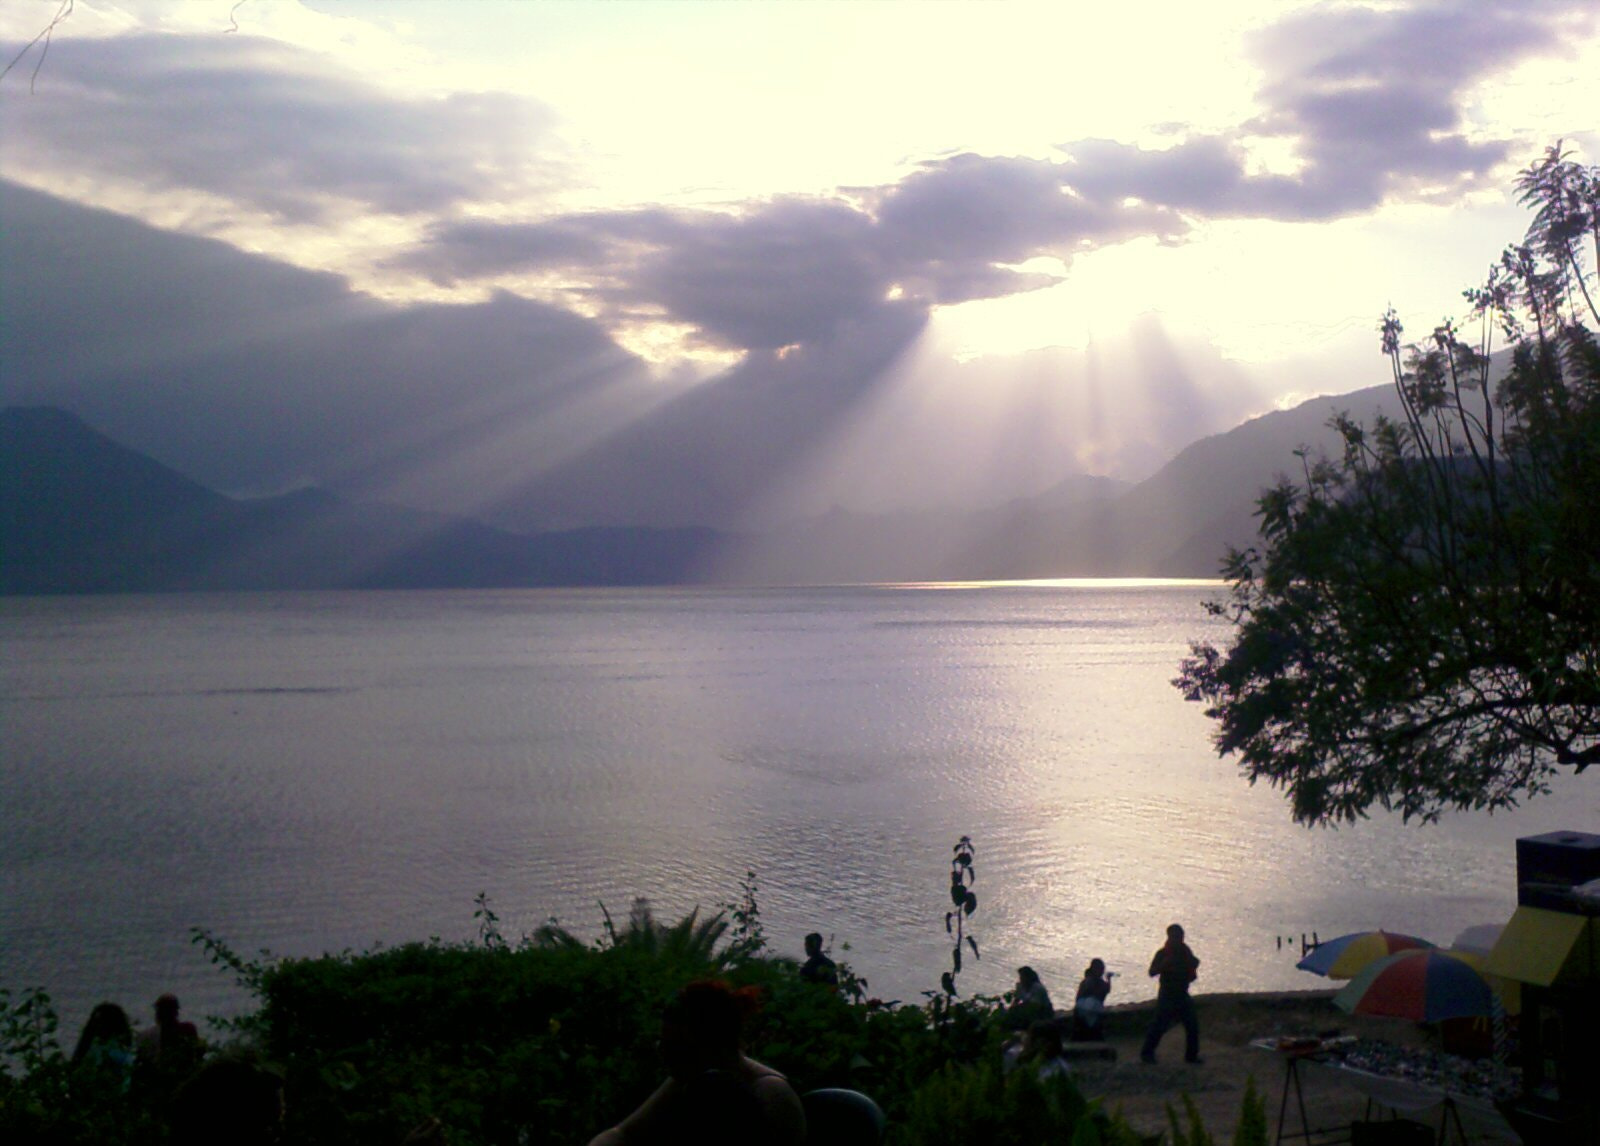 Photograph Atitlán by Jose Reyes on 500px